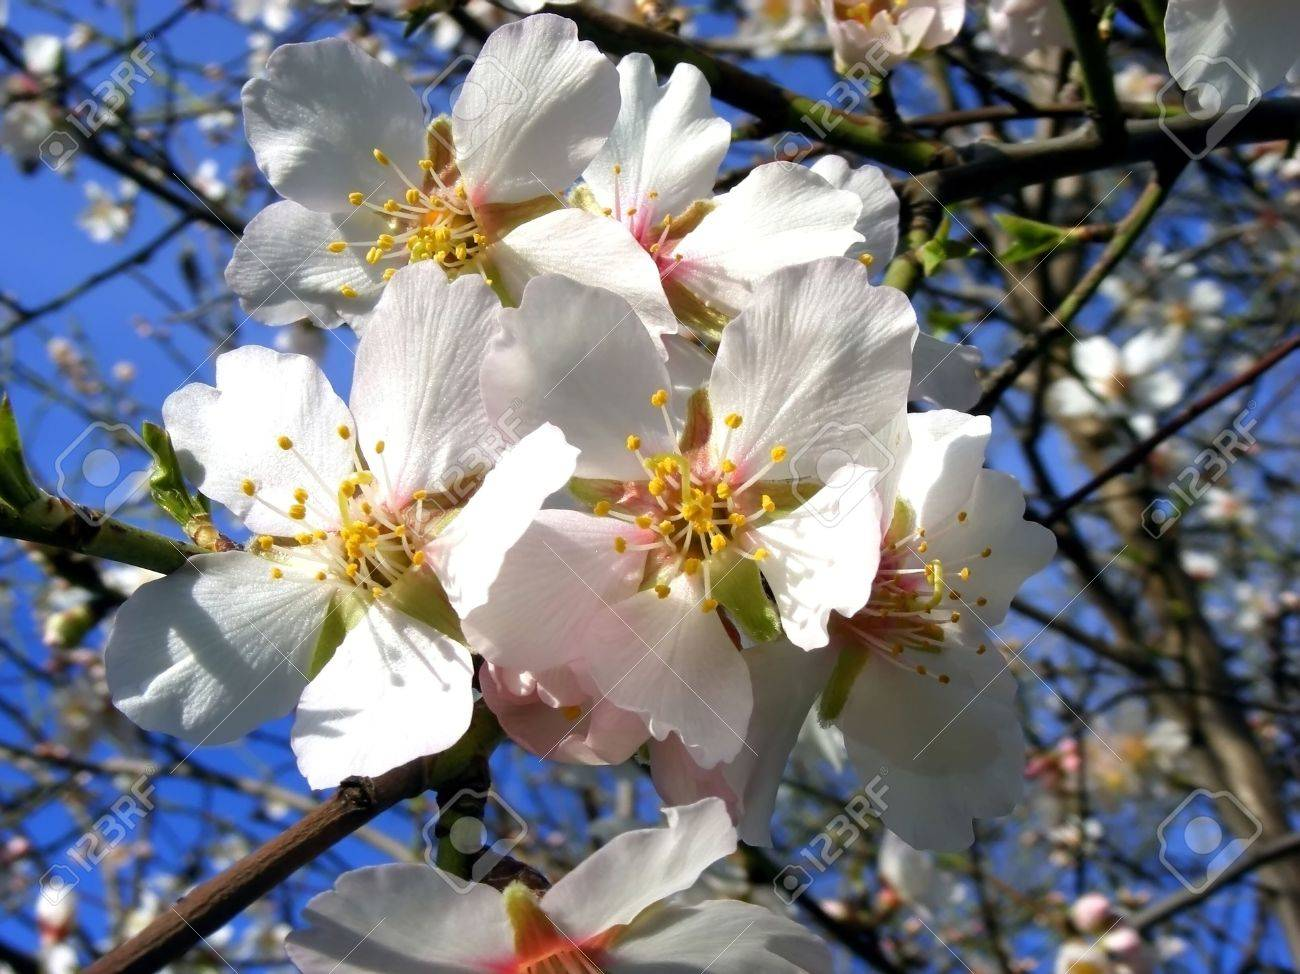 Flowering Almond Tree White Flowers On The Branches Against The